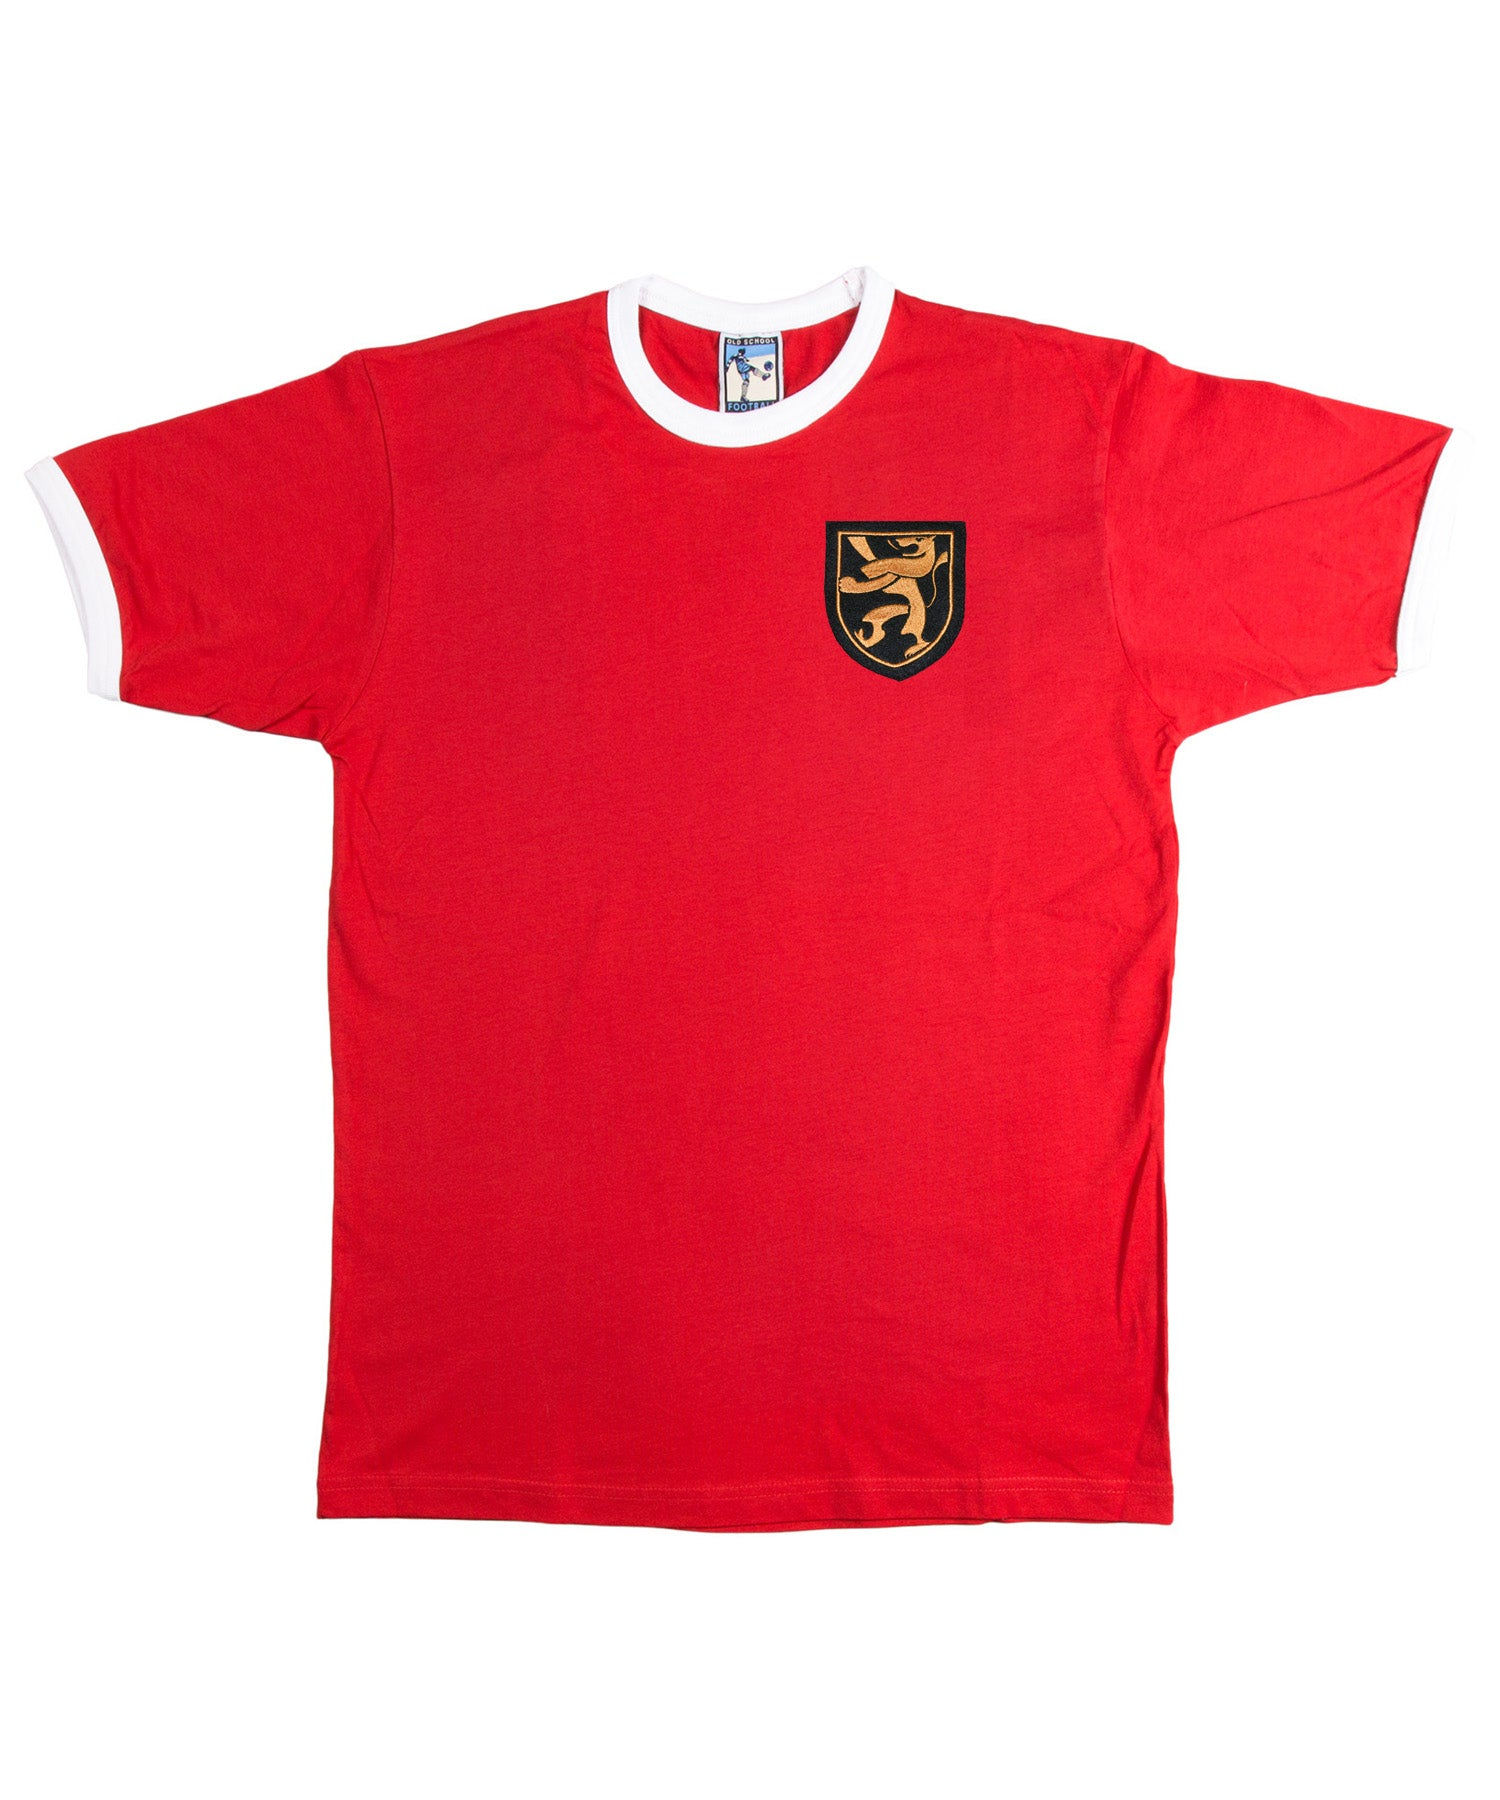 Belgium 1960's Football T Shirt Sizes S-XXXL Embroidered Logo - Old School Football